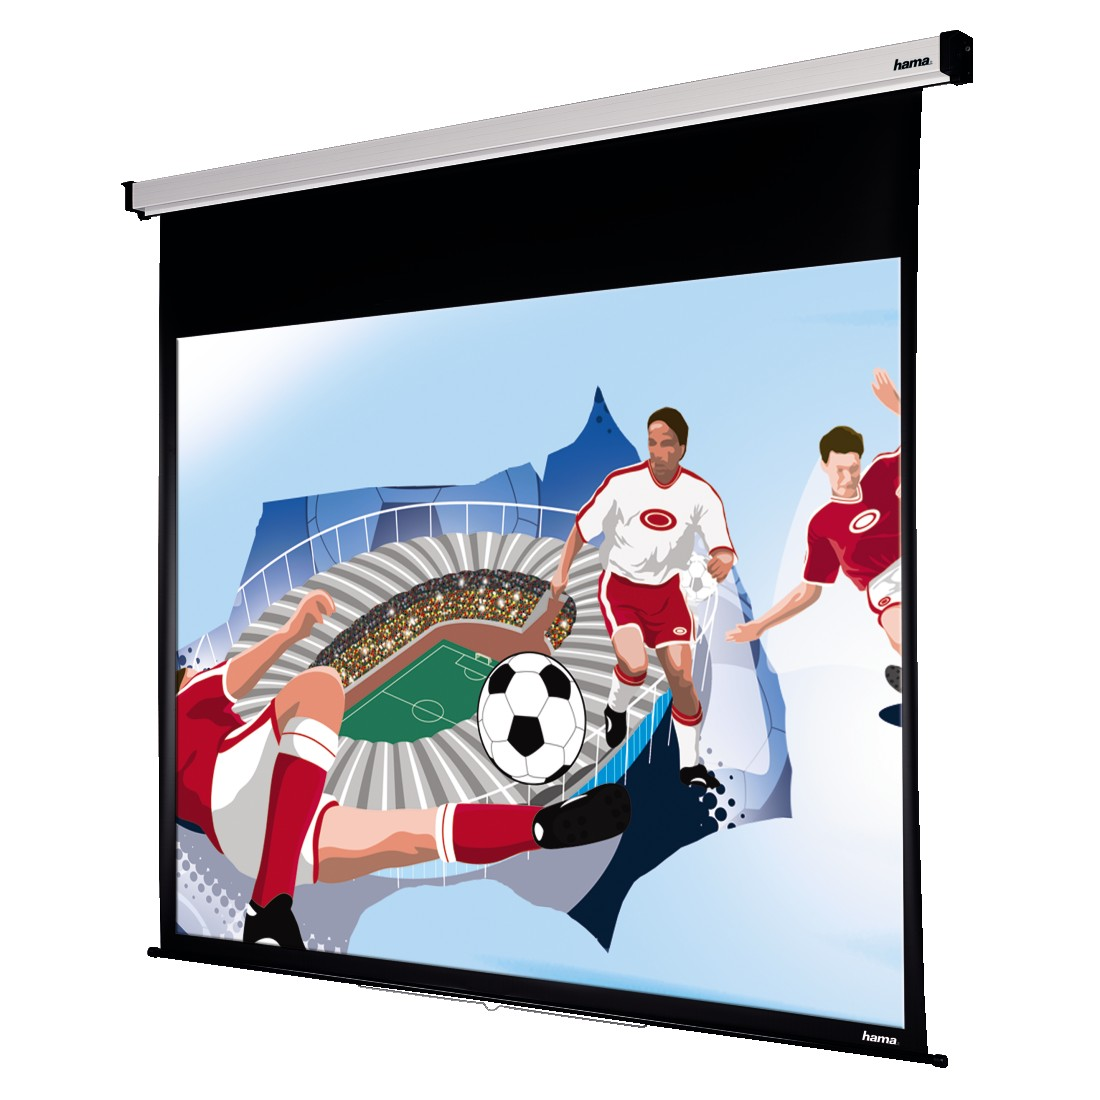 abx4 High-Res Image4 - Hama, Roller Projection Screen, 180 x 160 cm, 4:3